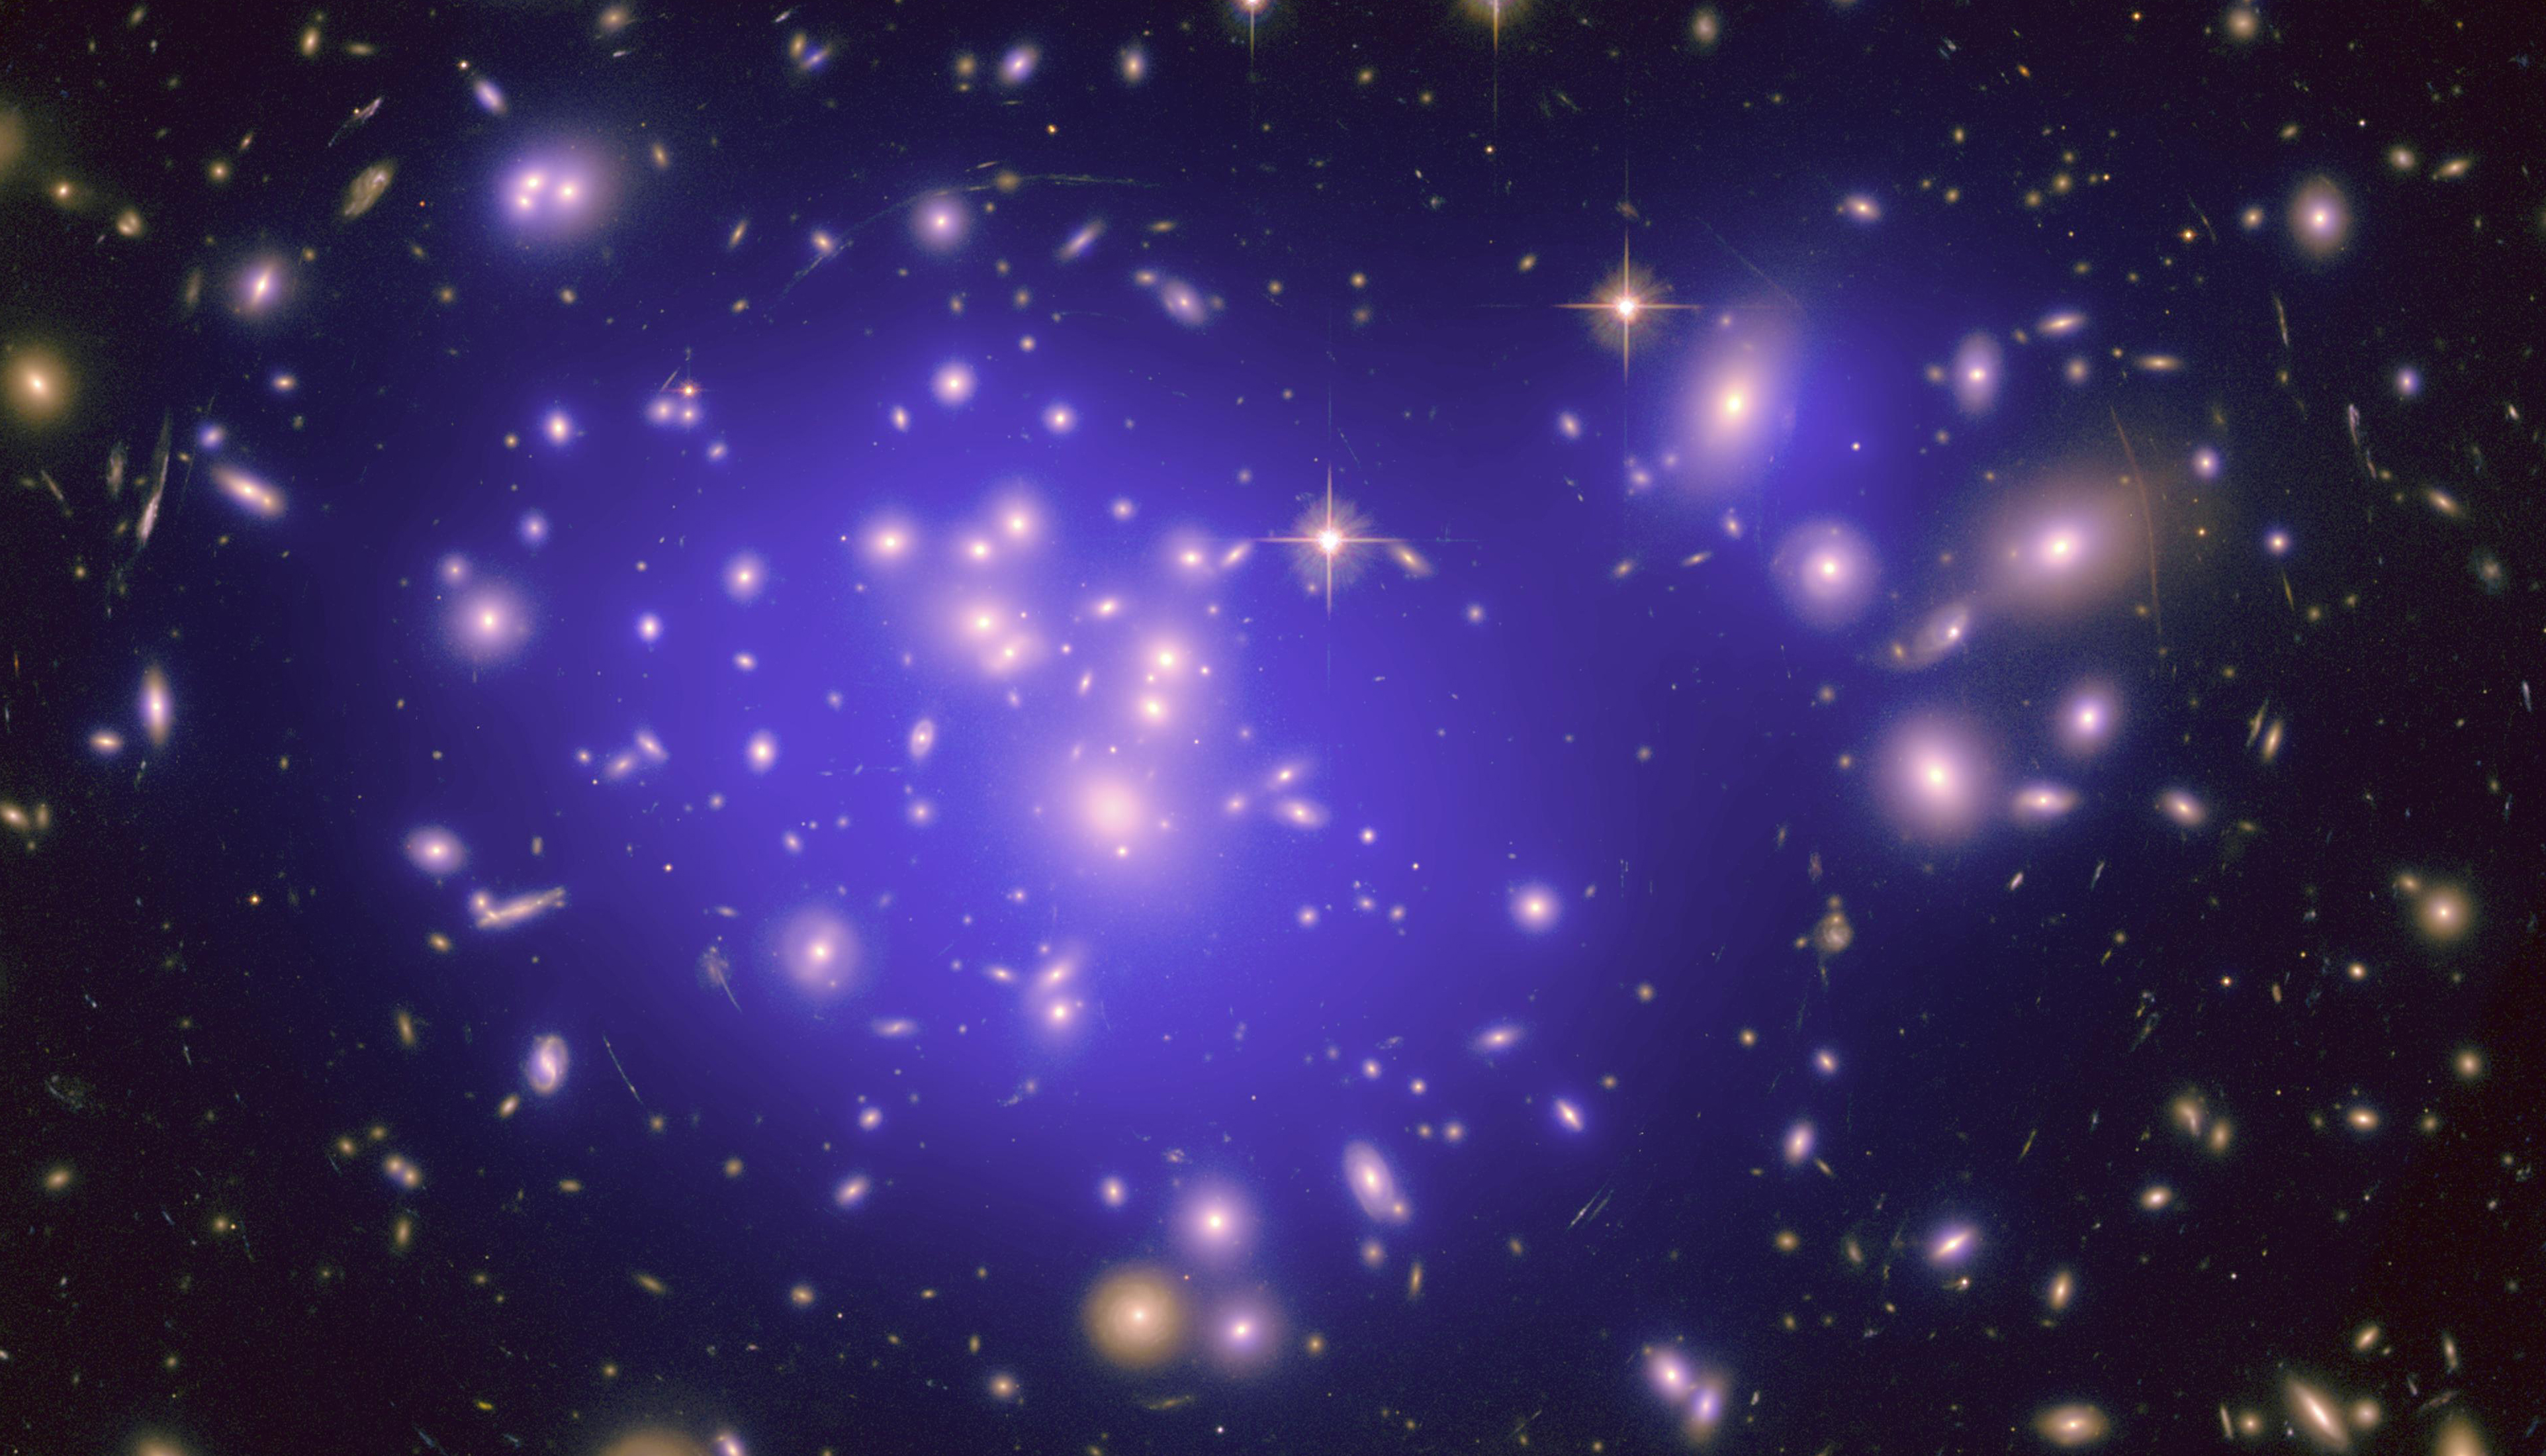 Mathematicians propose an alternative to dark energy as cause for cosmic acceleration